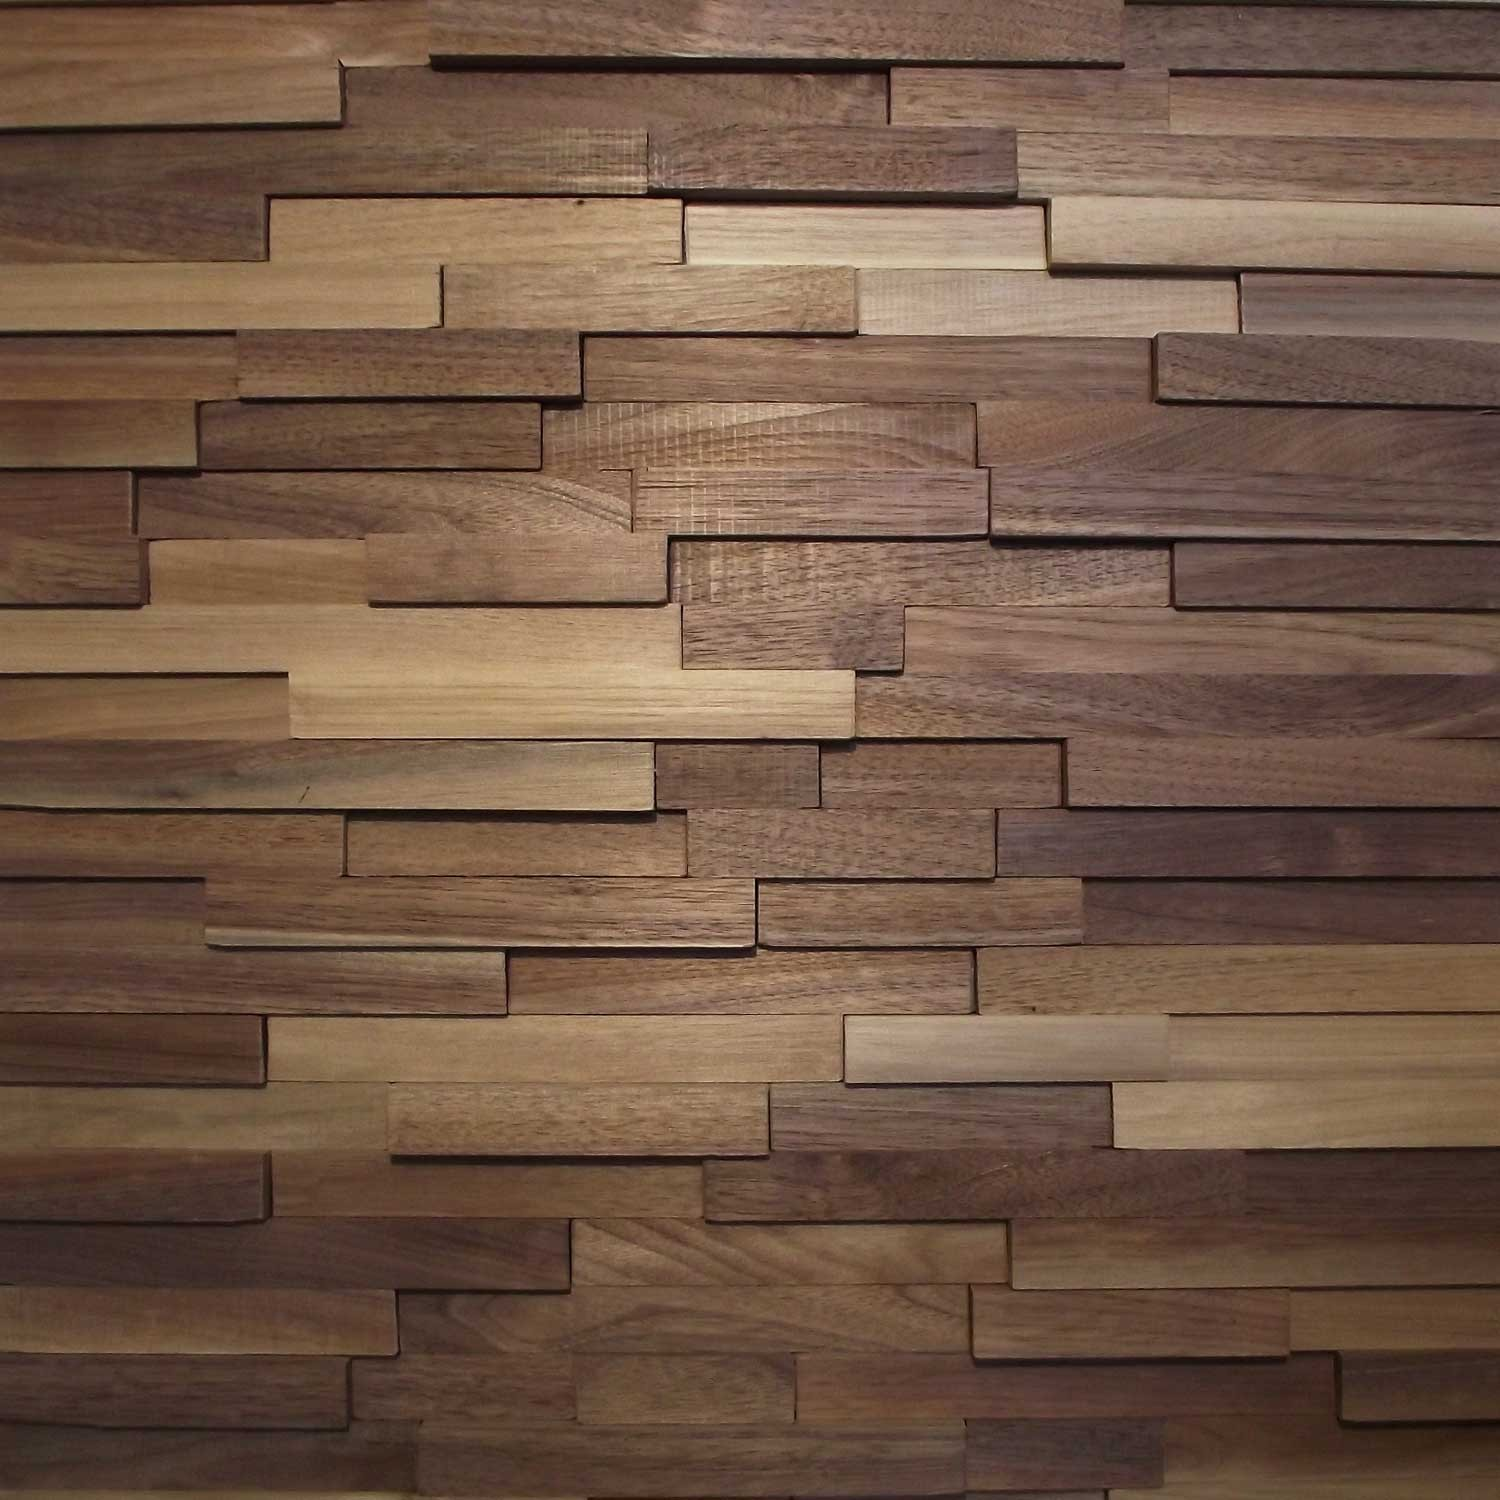 wood-panel-wall-design-basic-6-on-wall-design-ideas.jpg